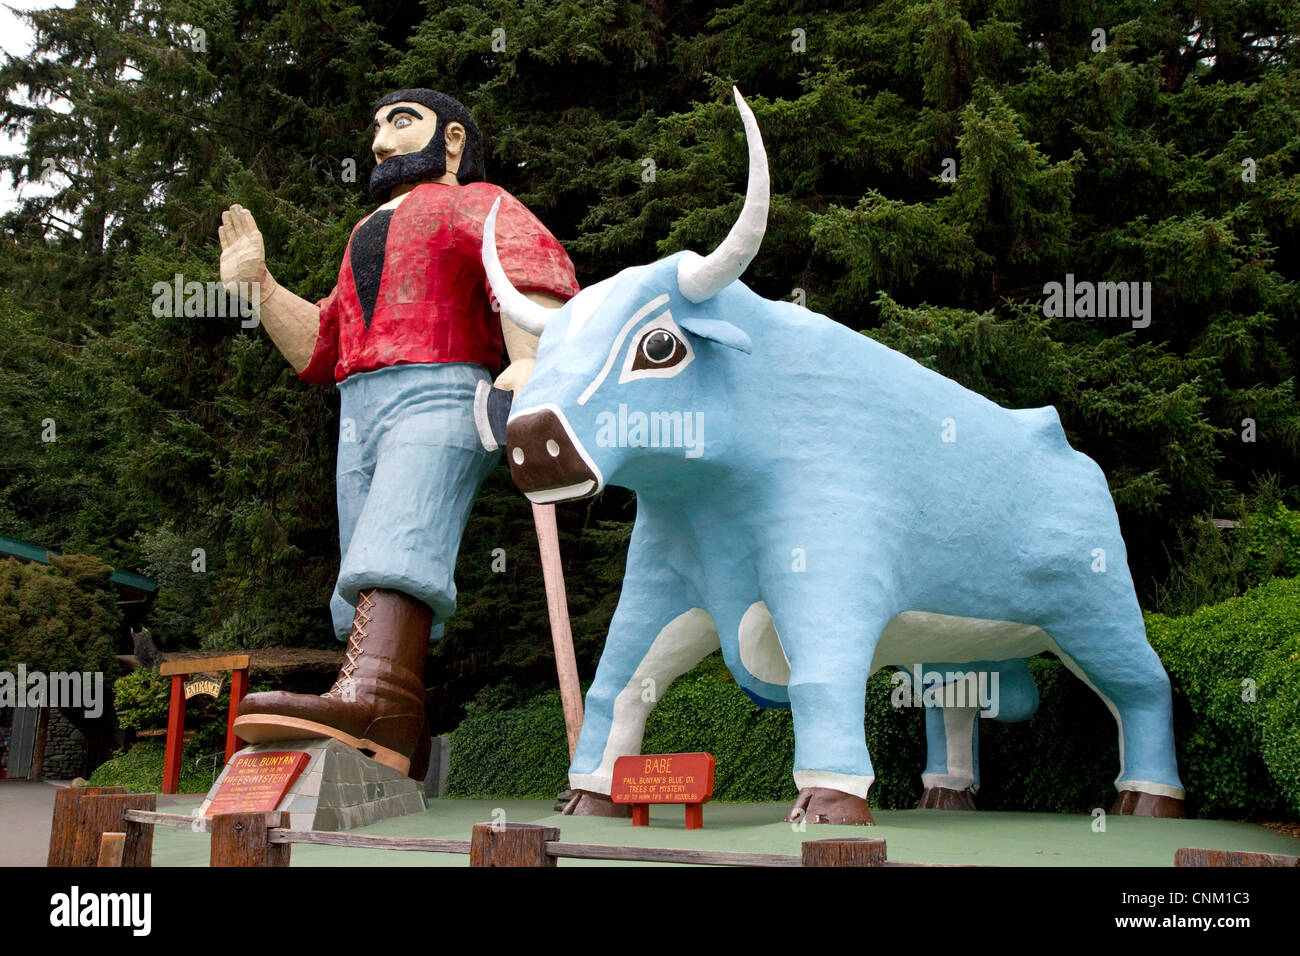 Paul Bunyan and Babe the Blue Ox statues at Trees of Mystery, a roadside attraction located in Klamath, California, Stock Photo